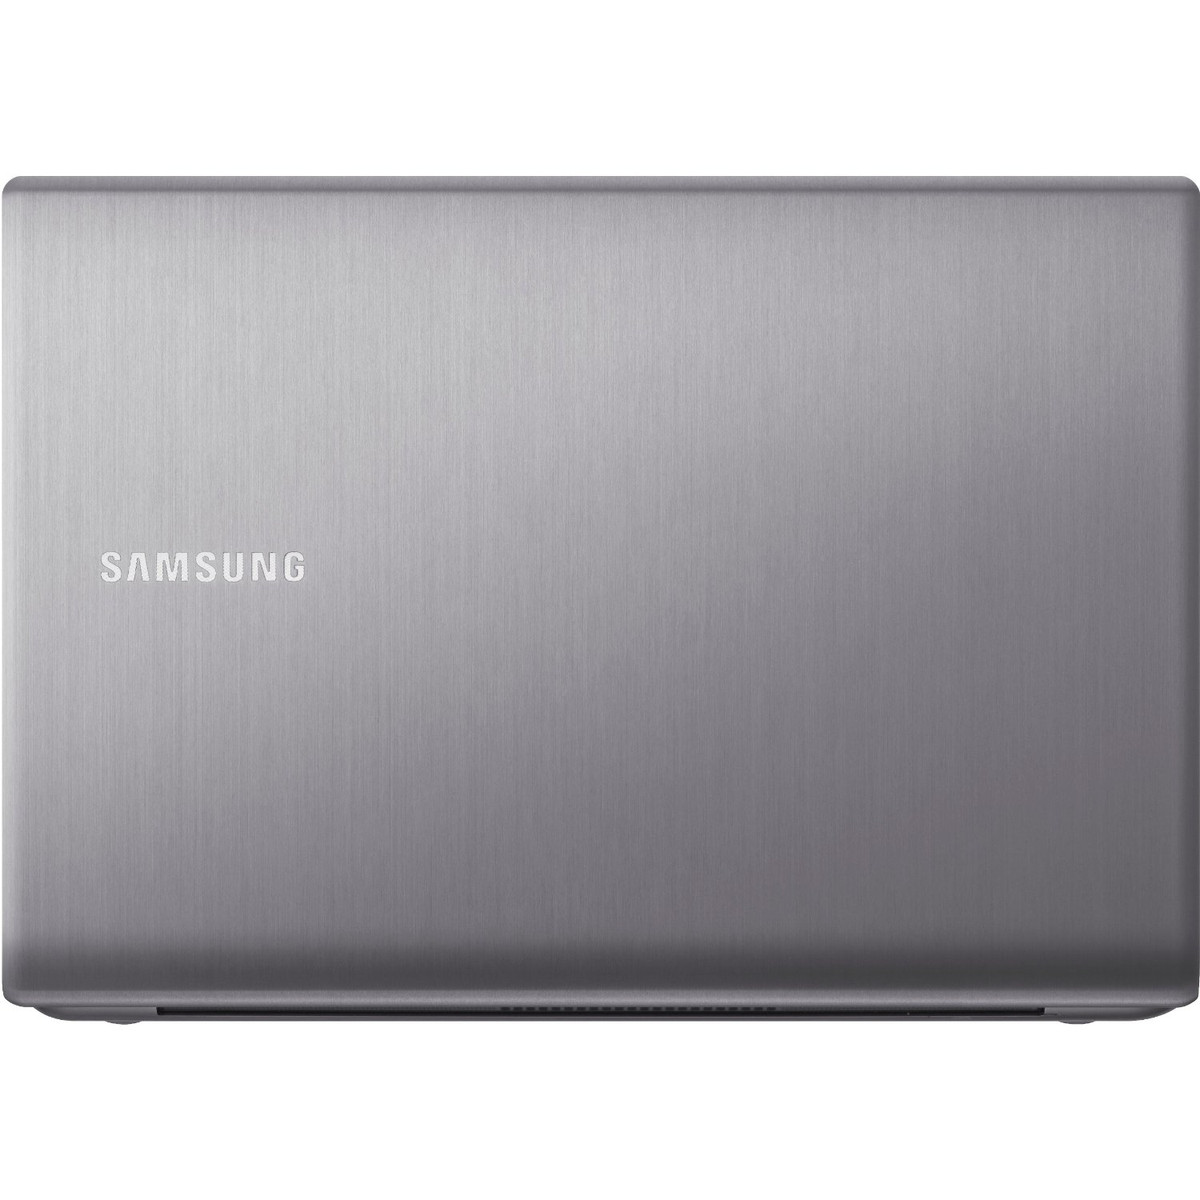 Samsung 740U3E-A01FR - Notebookcheck.net External Reviews